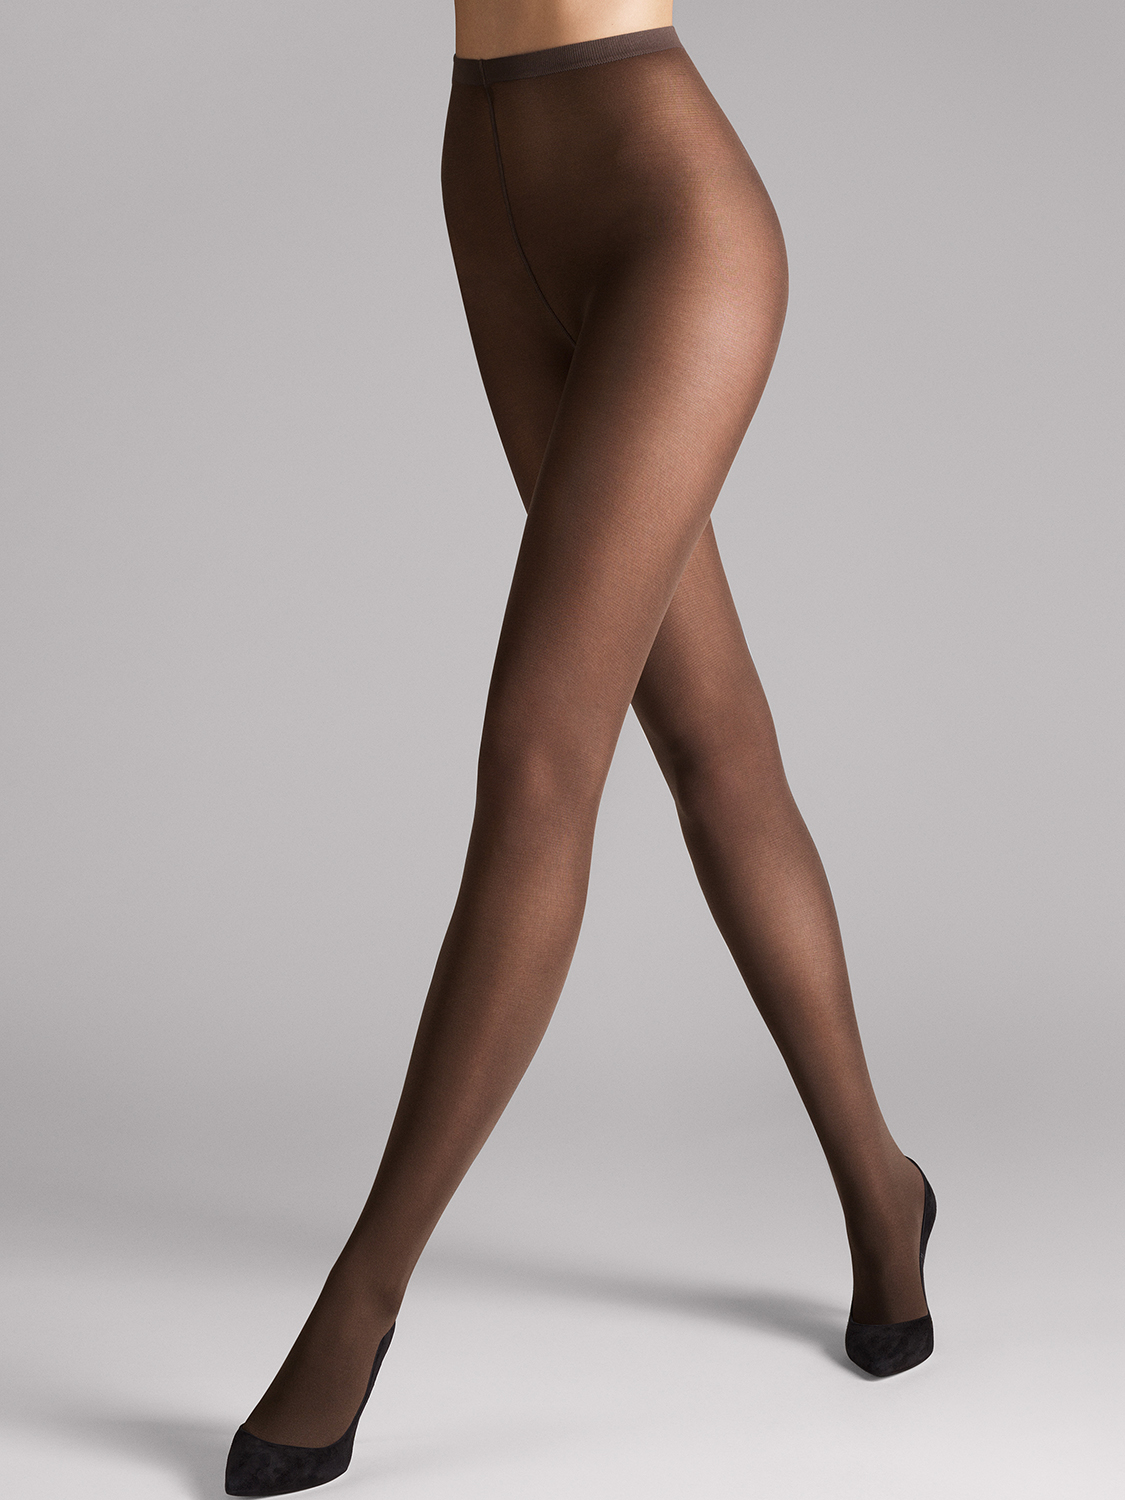 Колготы velvet de luxe 50 tights фото